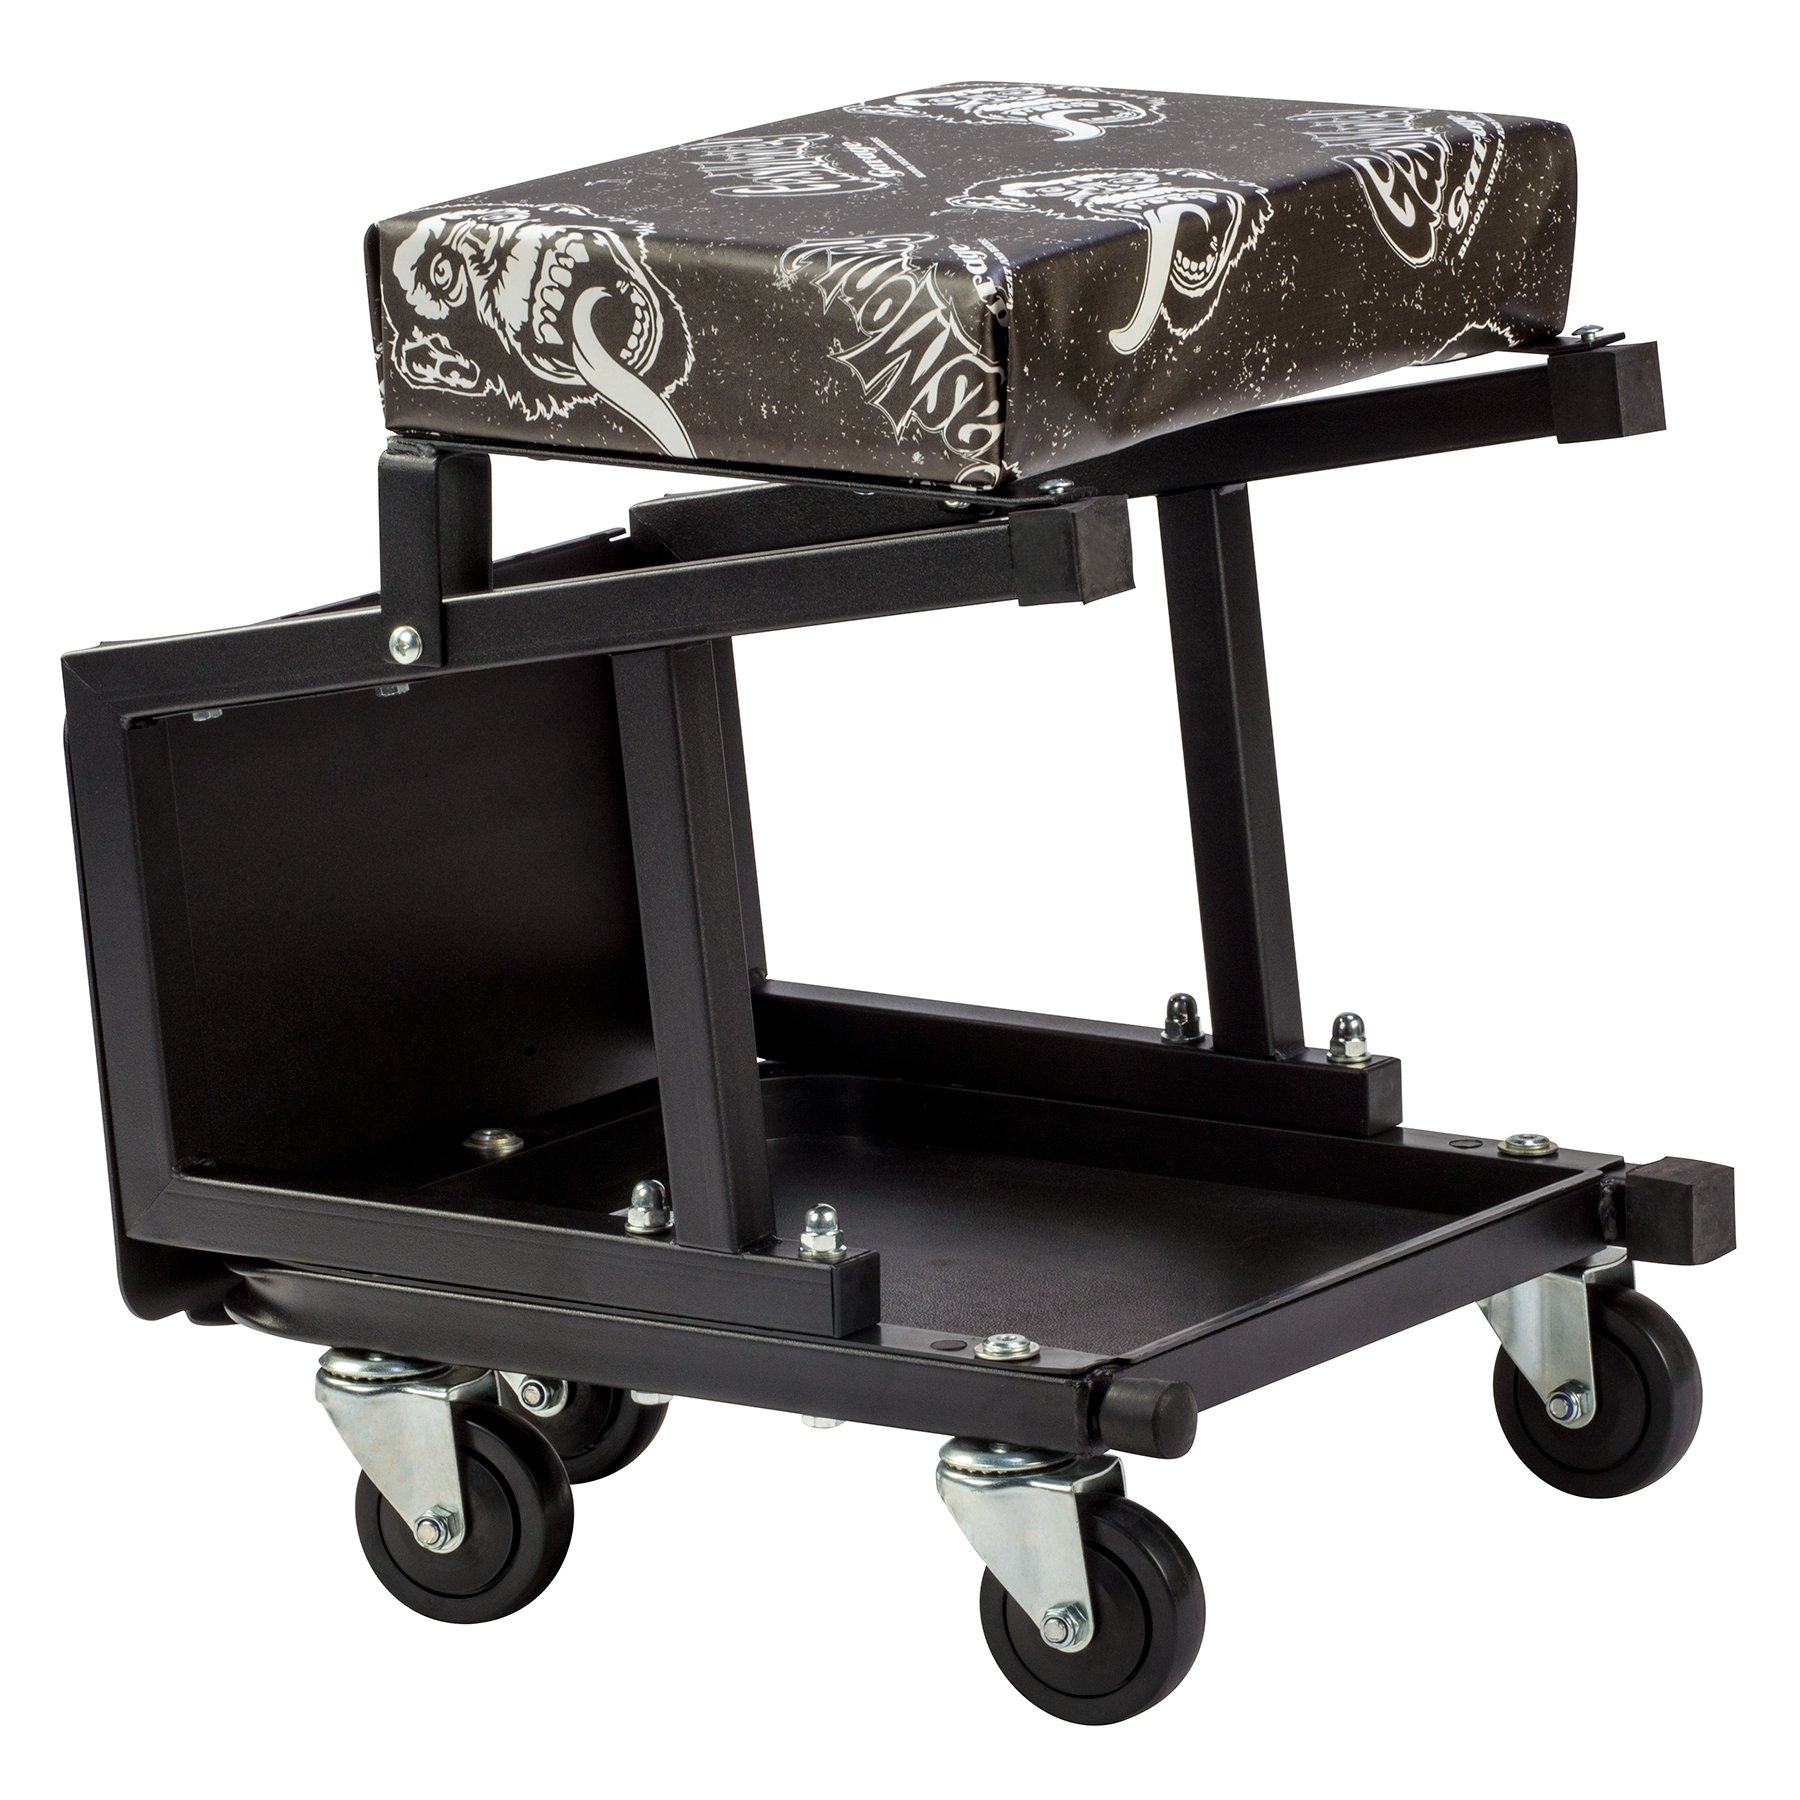 Gas Monkey Mechanic Creeper Seat and Stool Combo - 5 Rolling Casters with 350 Lbs Capacity for Auto Car Garage